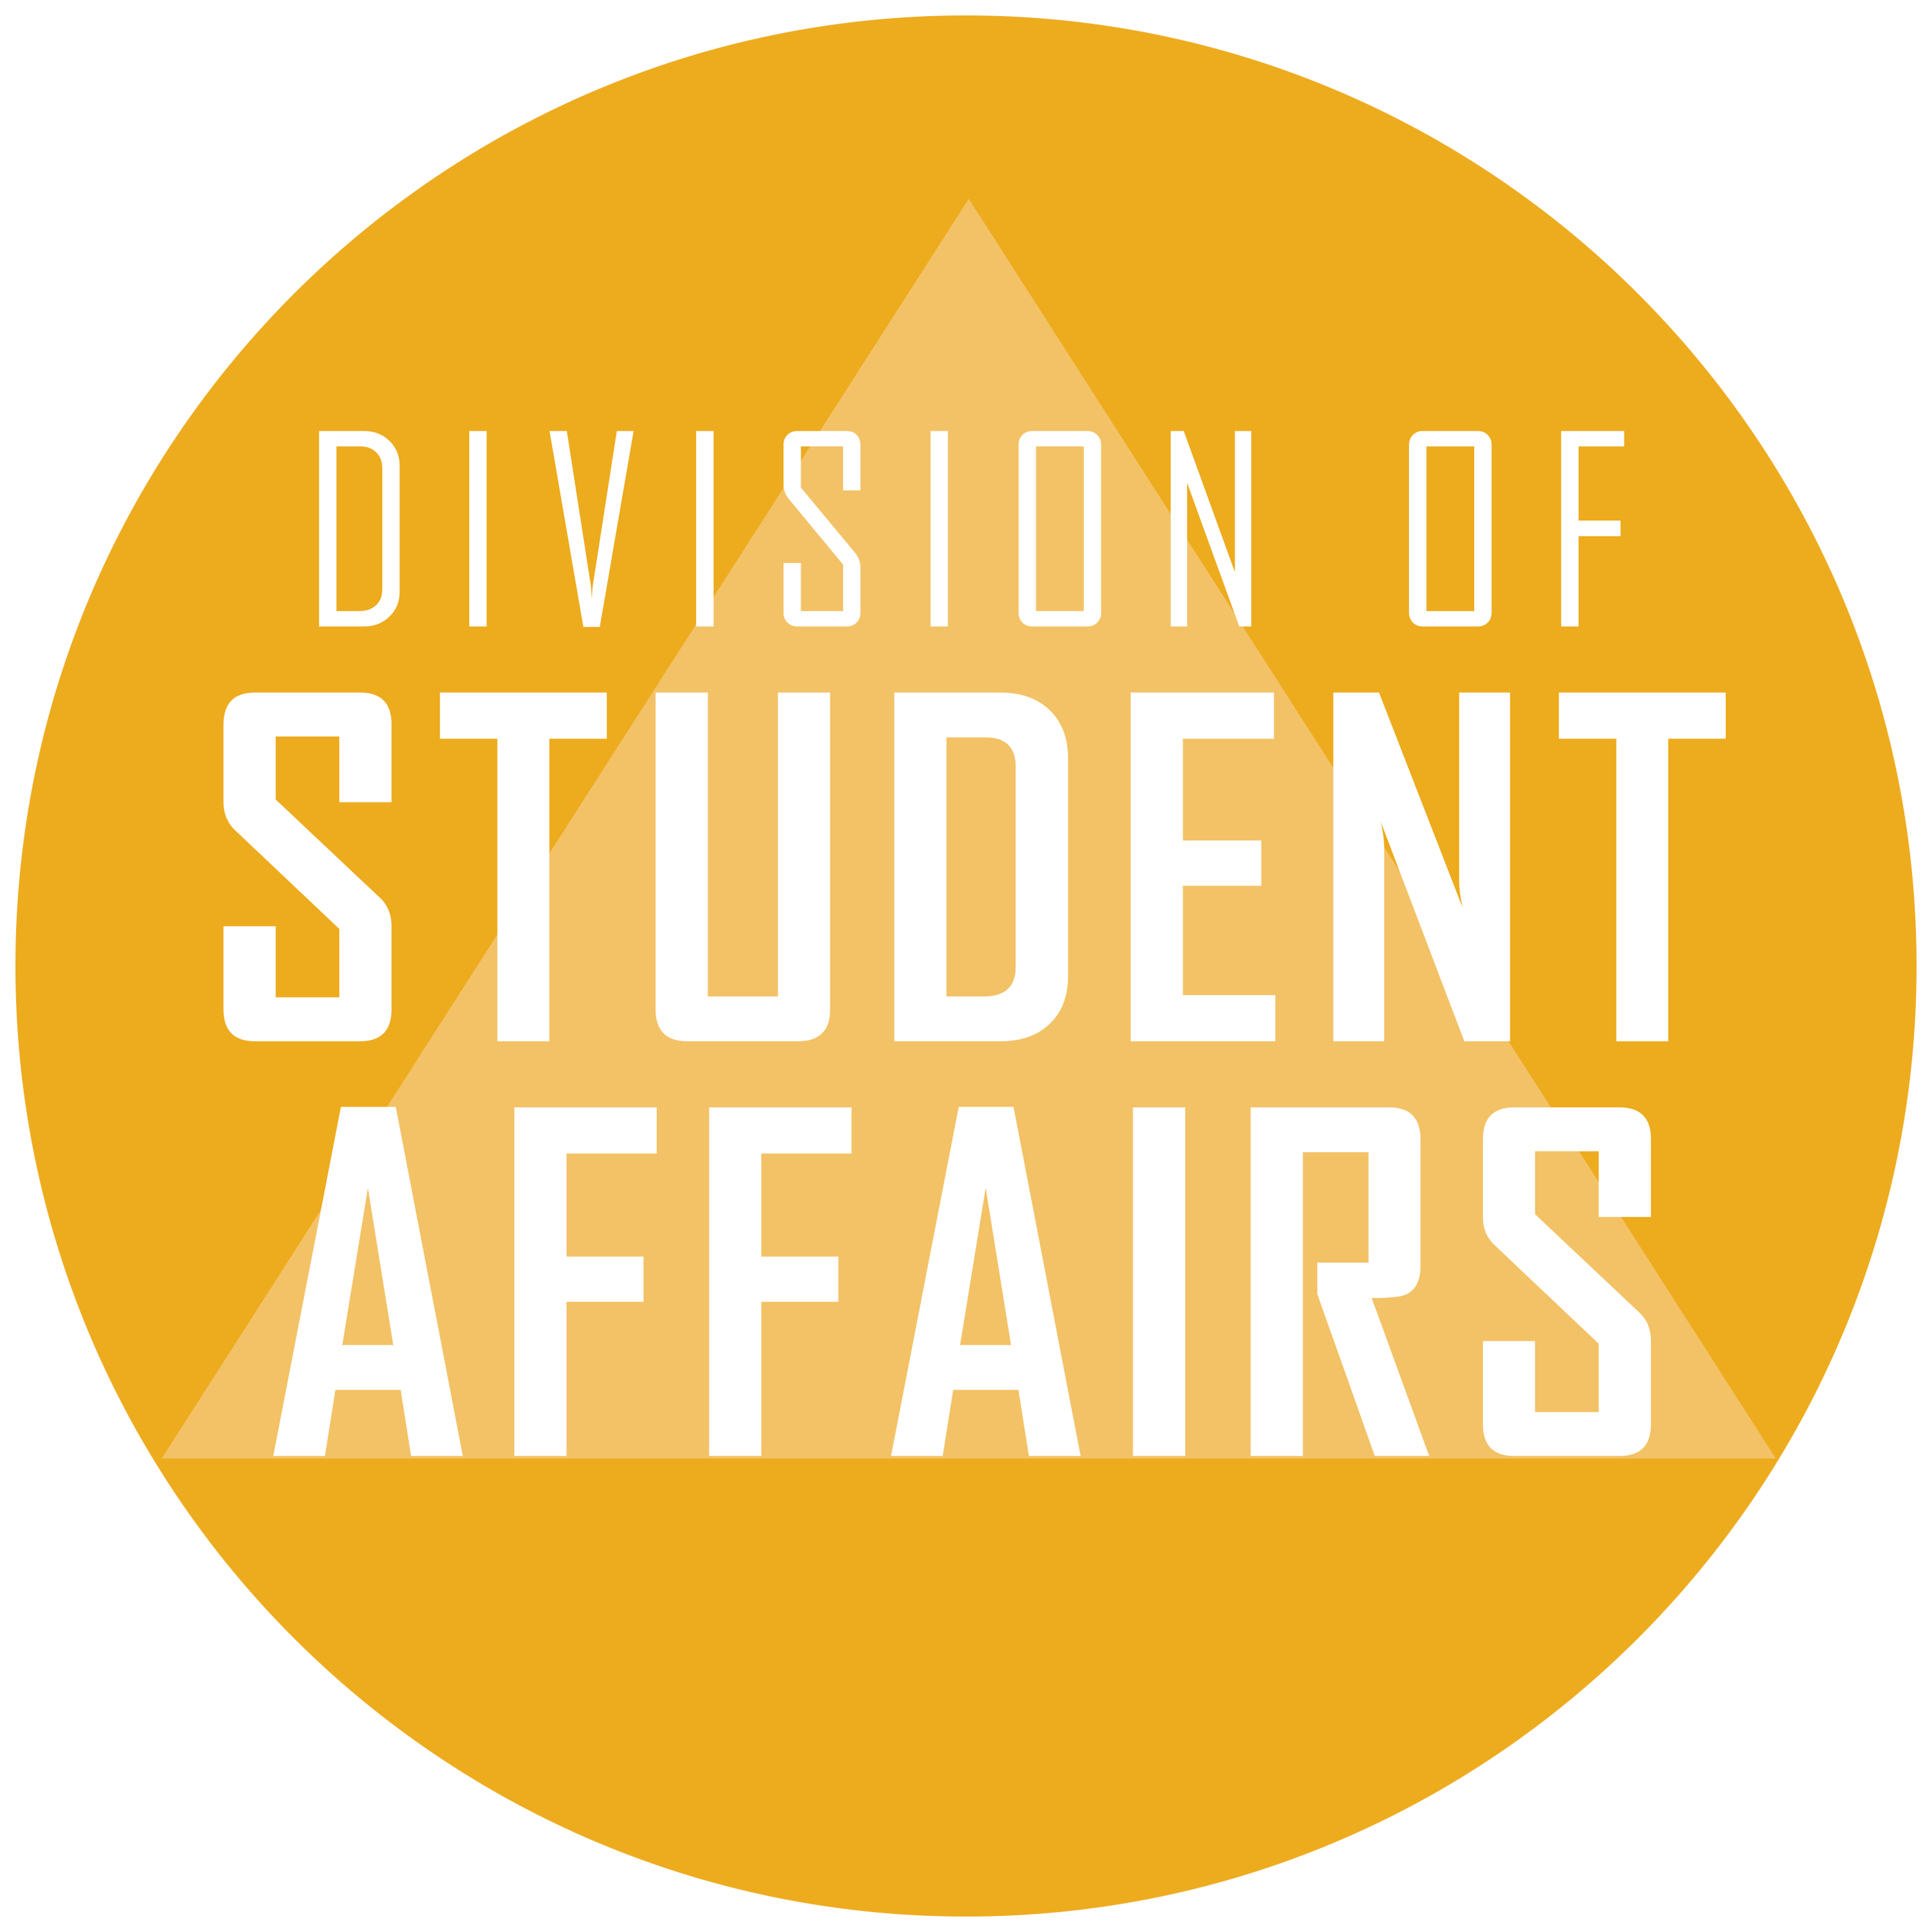 Division of Student Affairs text within a gold circle with a background of a triangle/pyramid.